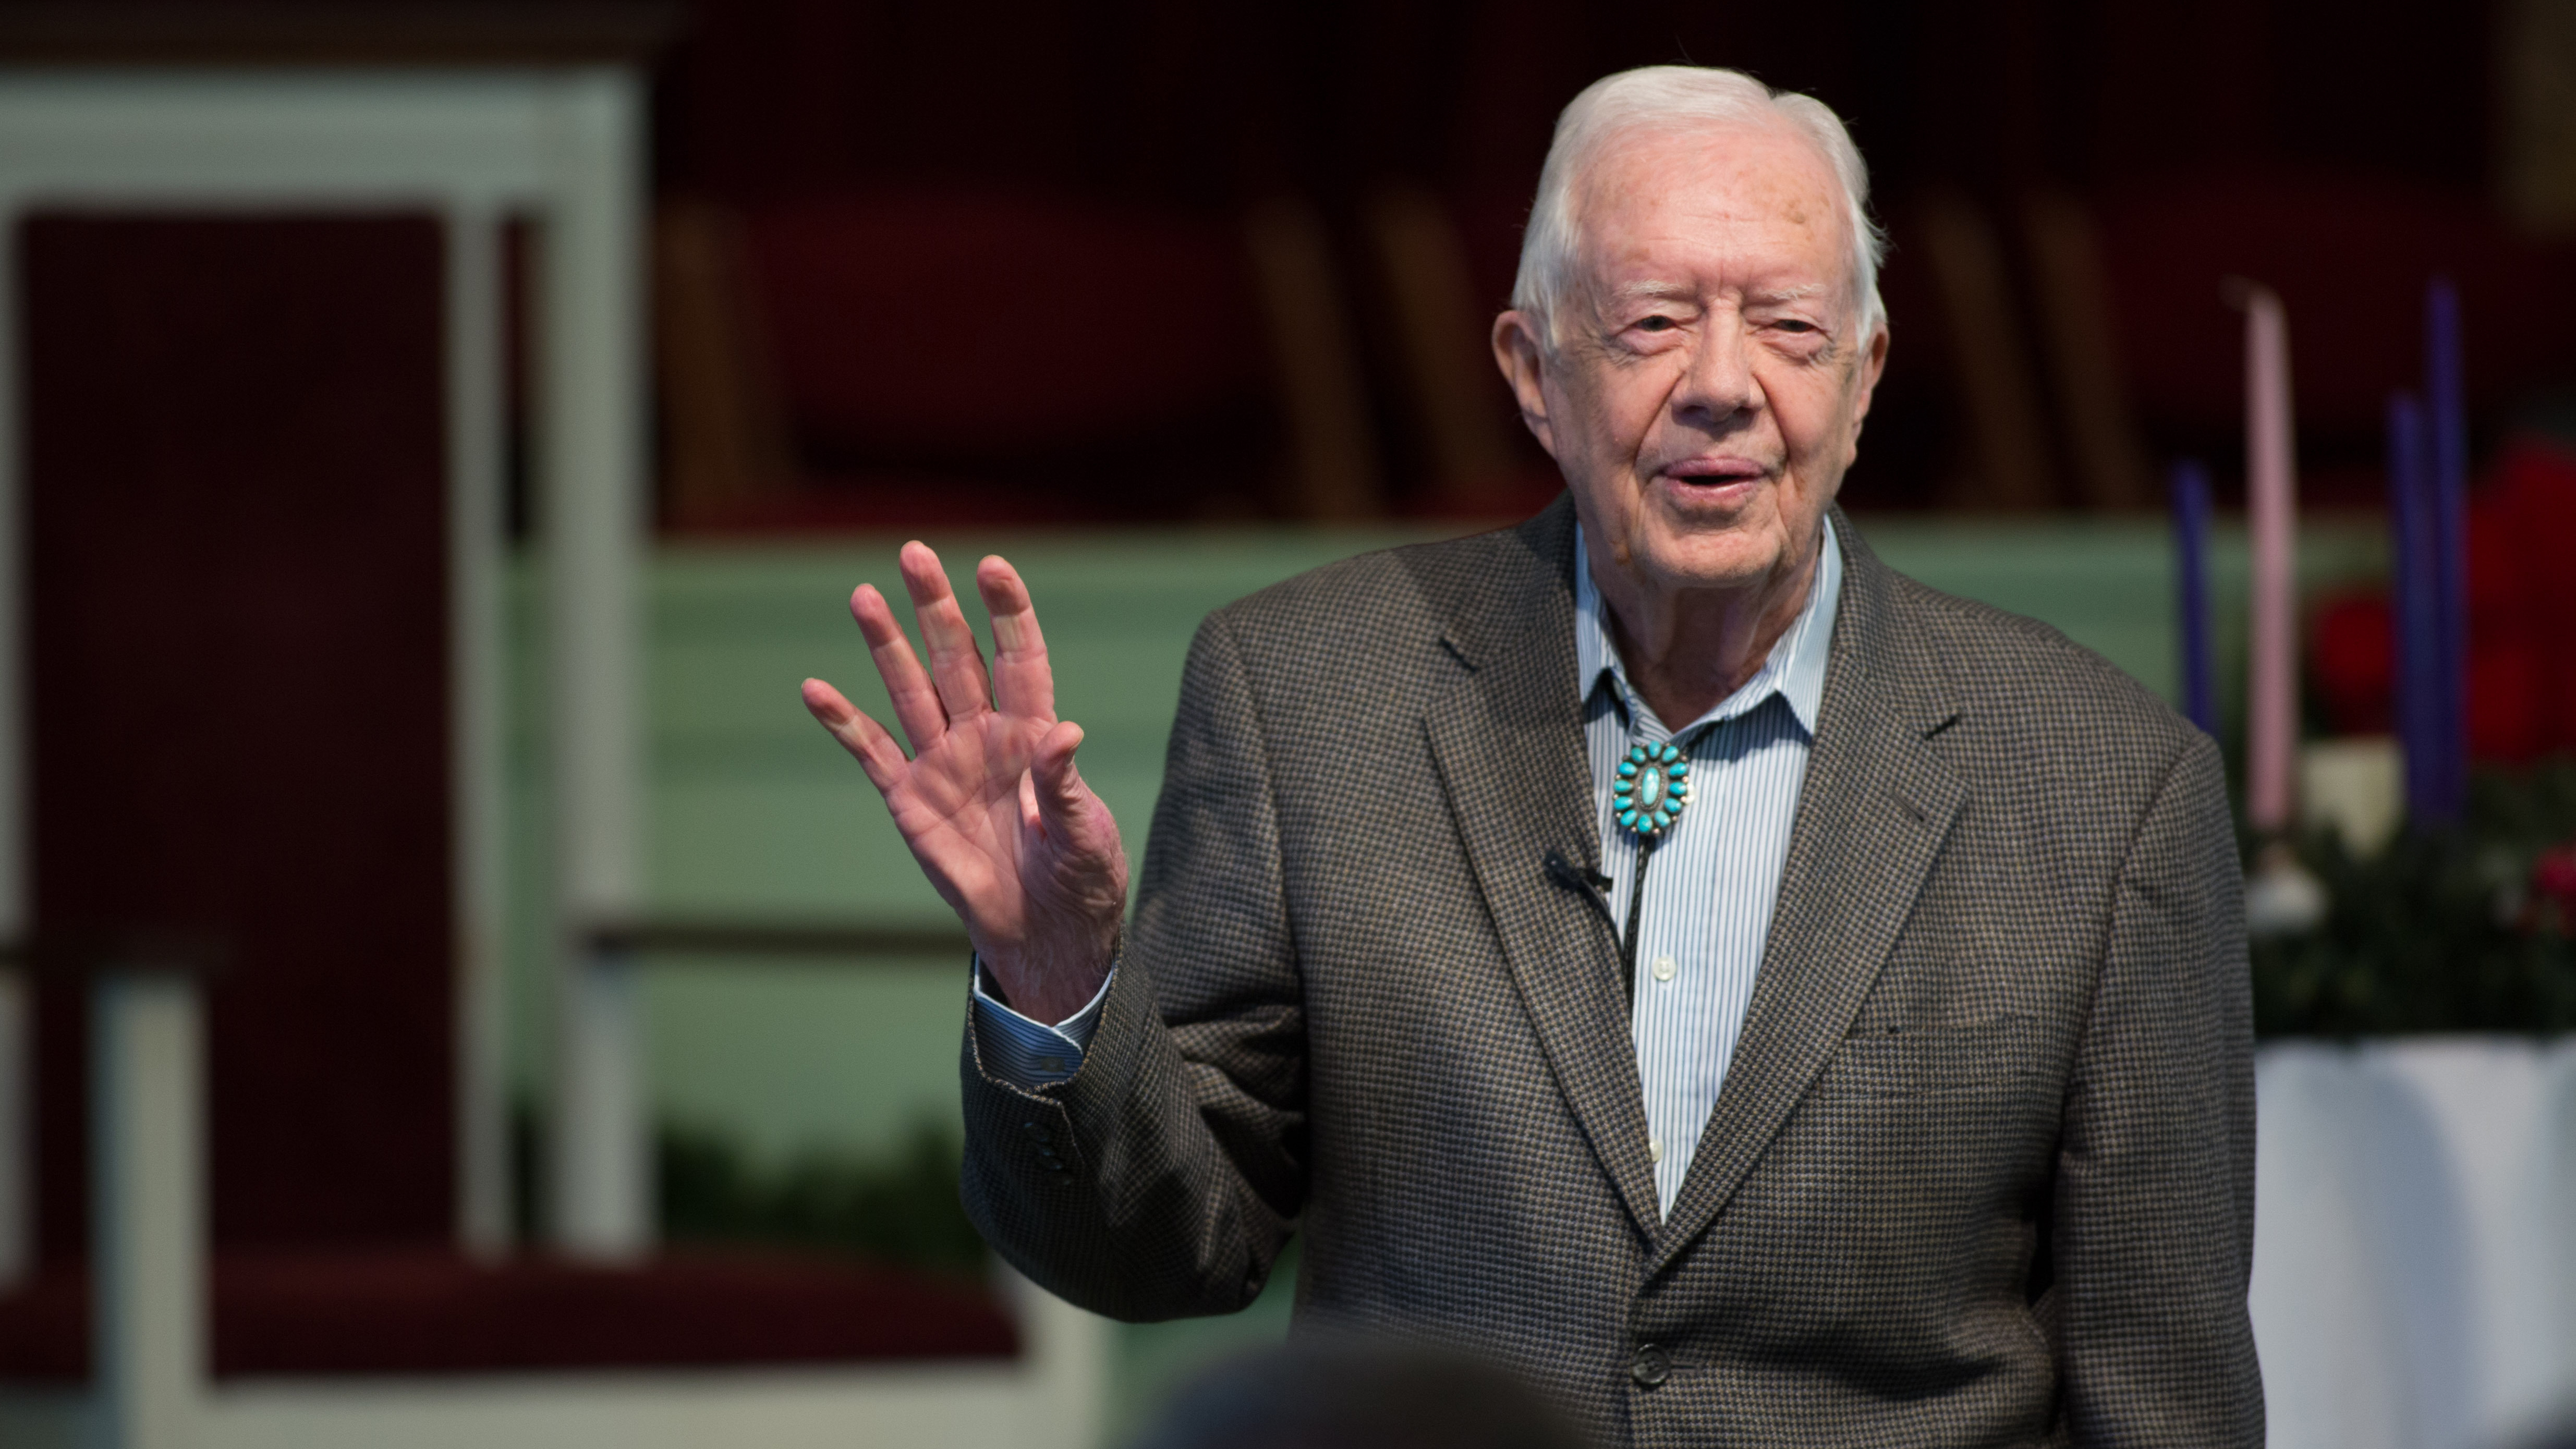 Former US President Jimmy Carter says renewable energy could help Donald Trump create jobs